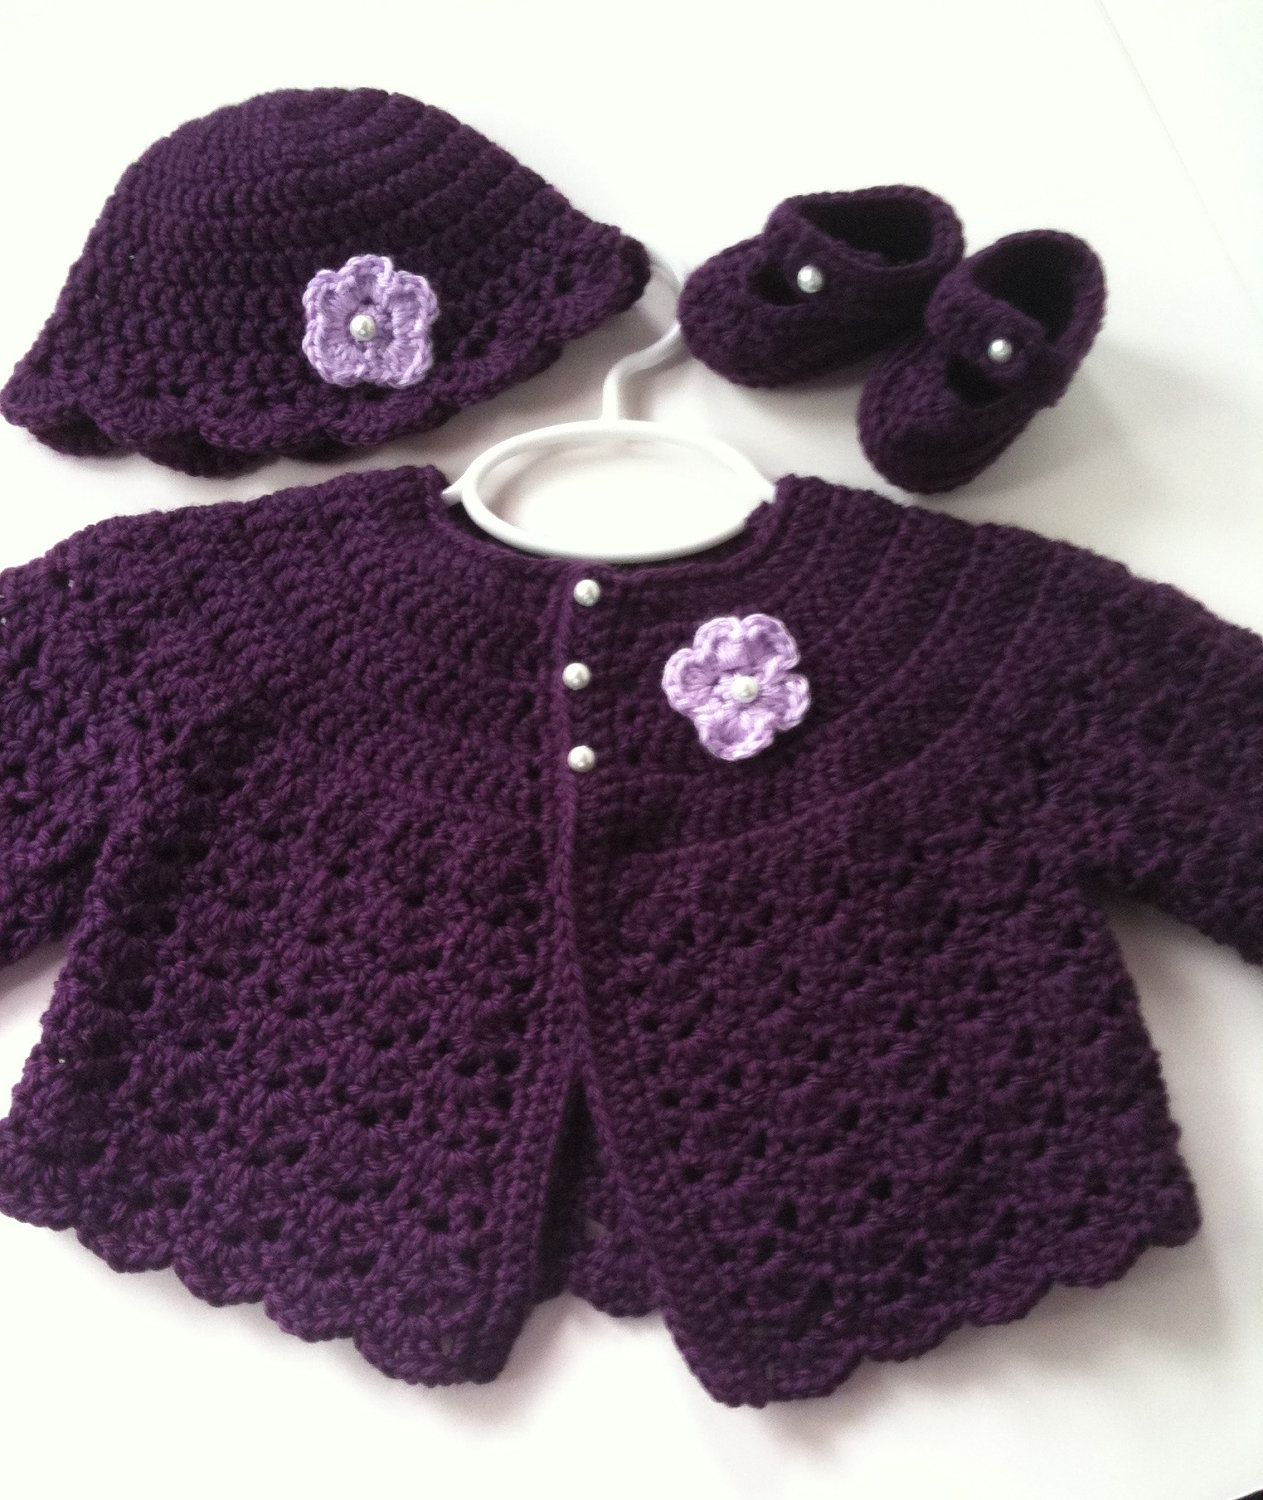 ad79f477b377 Crochet Baby Sweater Hat Booties Set Plum 0 to 3 months.  42.00